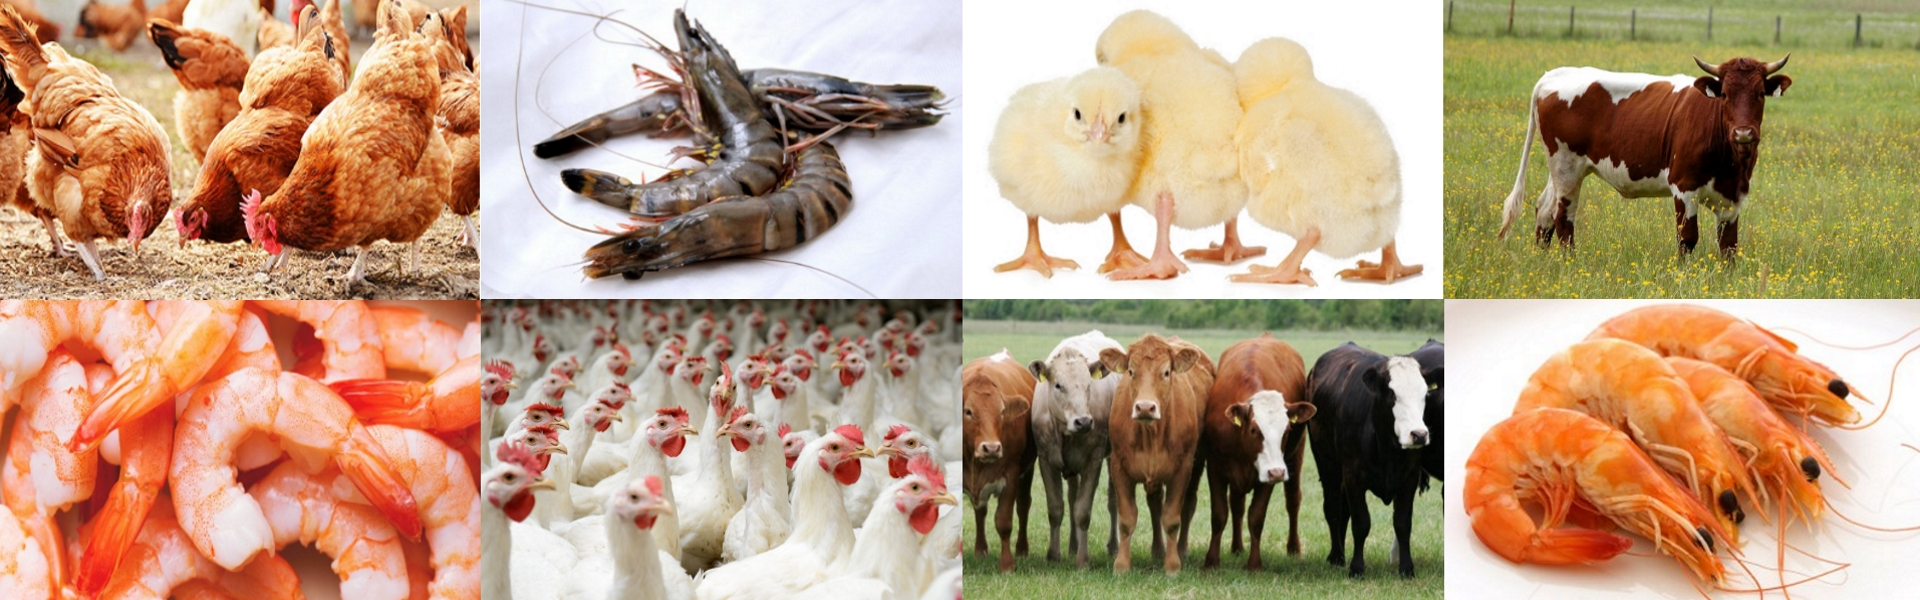 Soya Lecithin for Poultry, Aqua and Cattle Feed Manufacturing